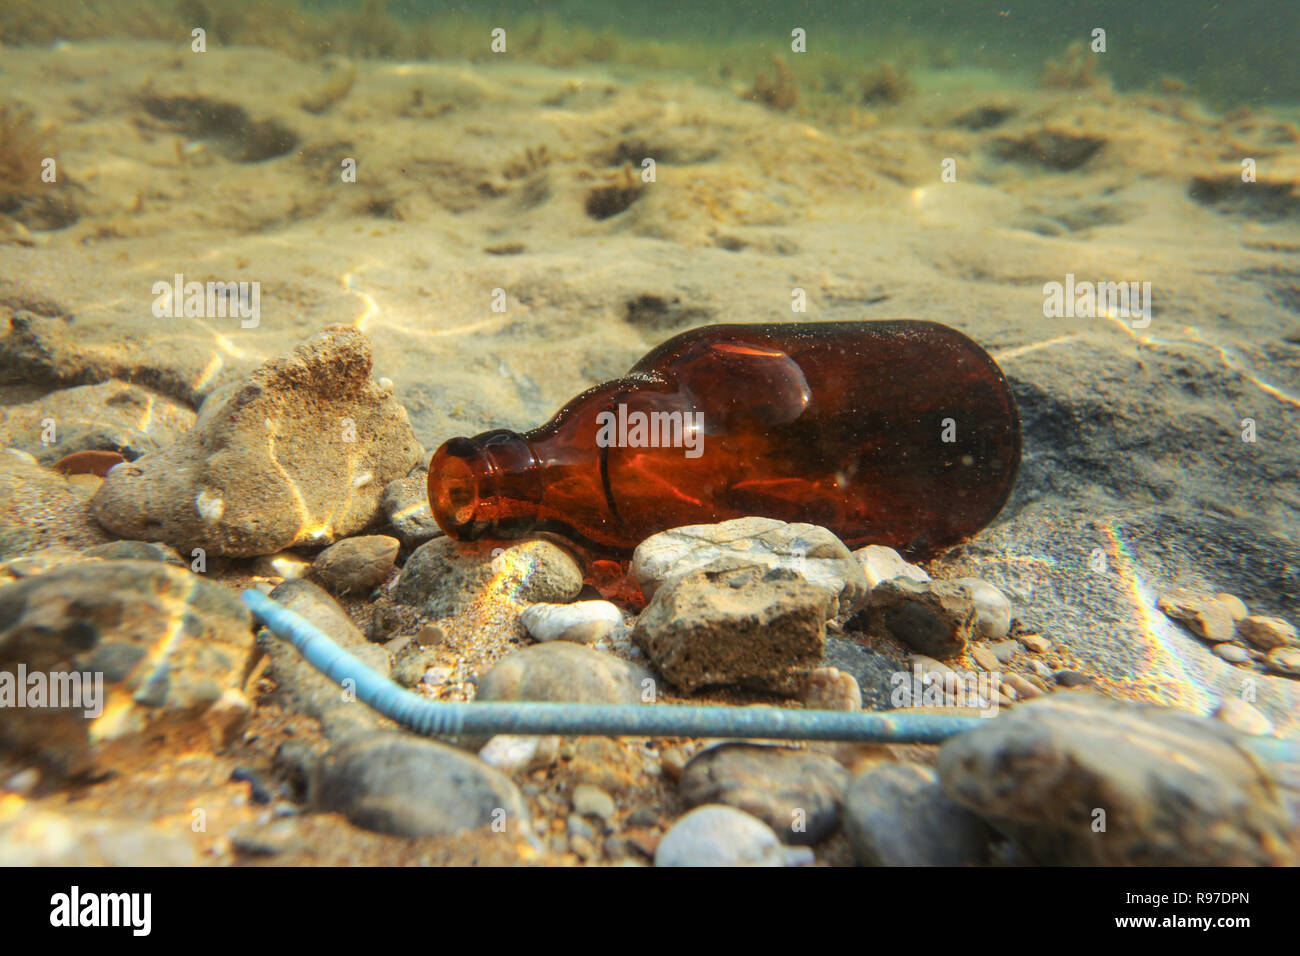 Small brown beer bottle and blue plastic straw on sandy sea bottom. Underwater photo, ocean littering concept. - Stock Image